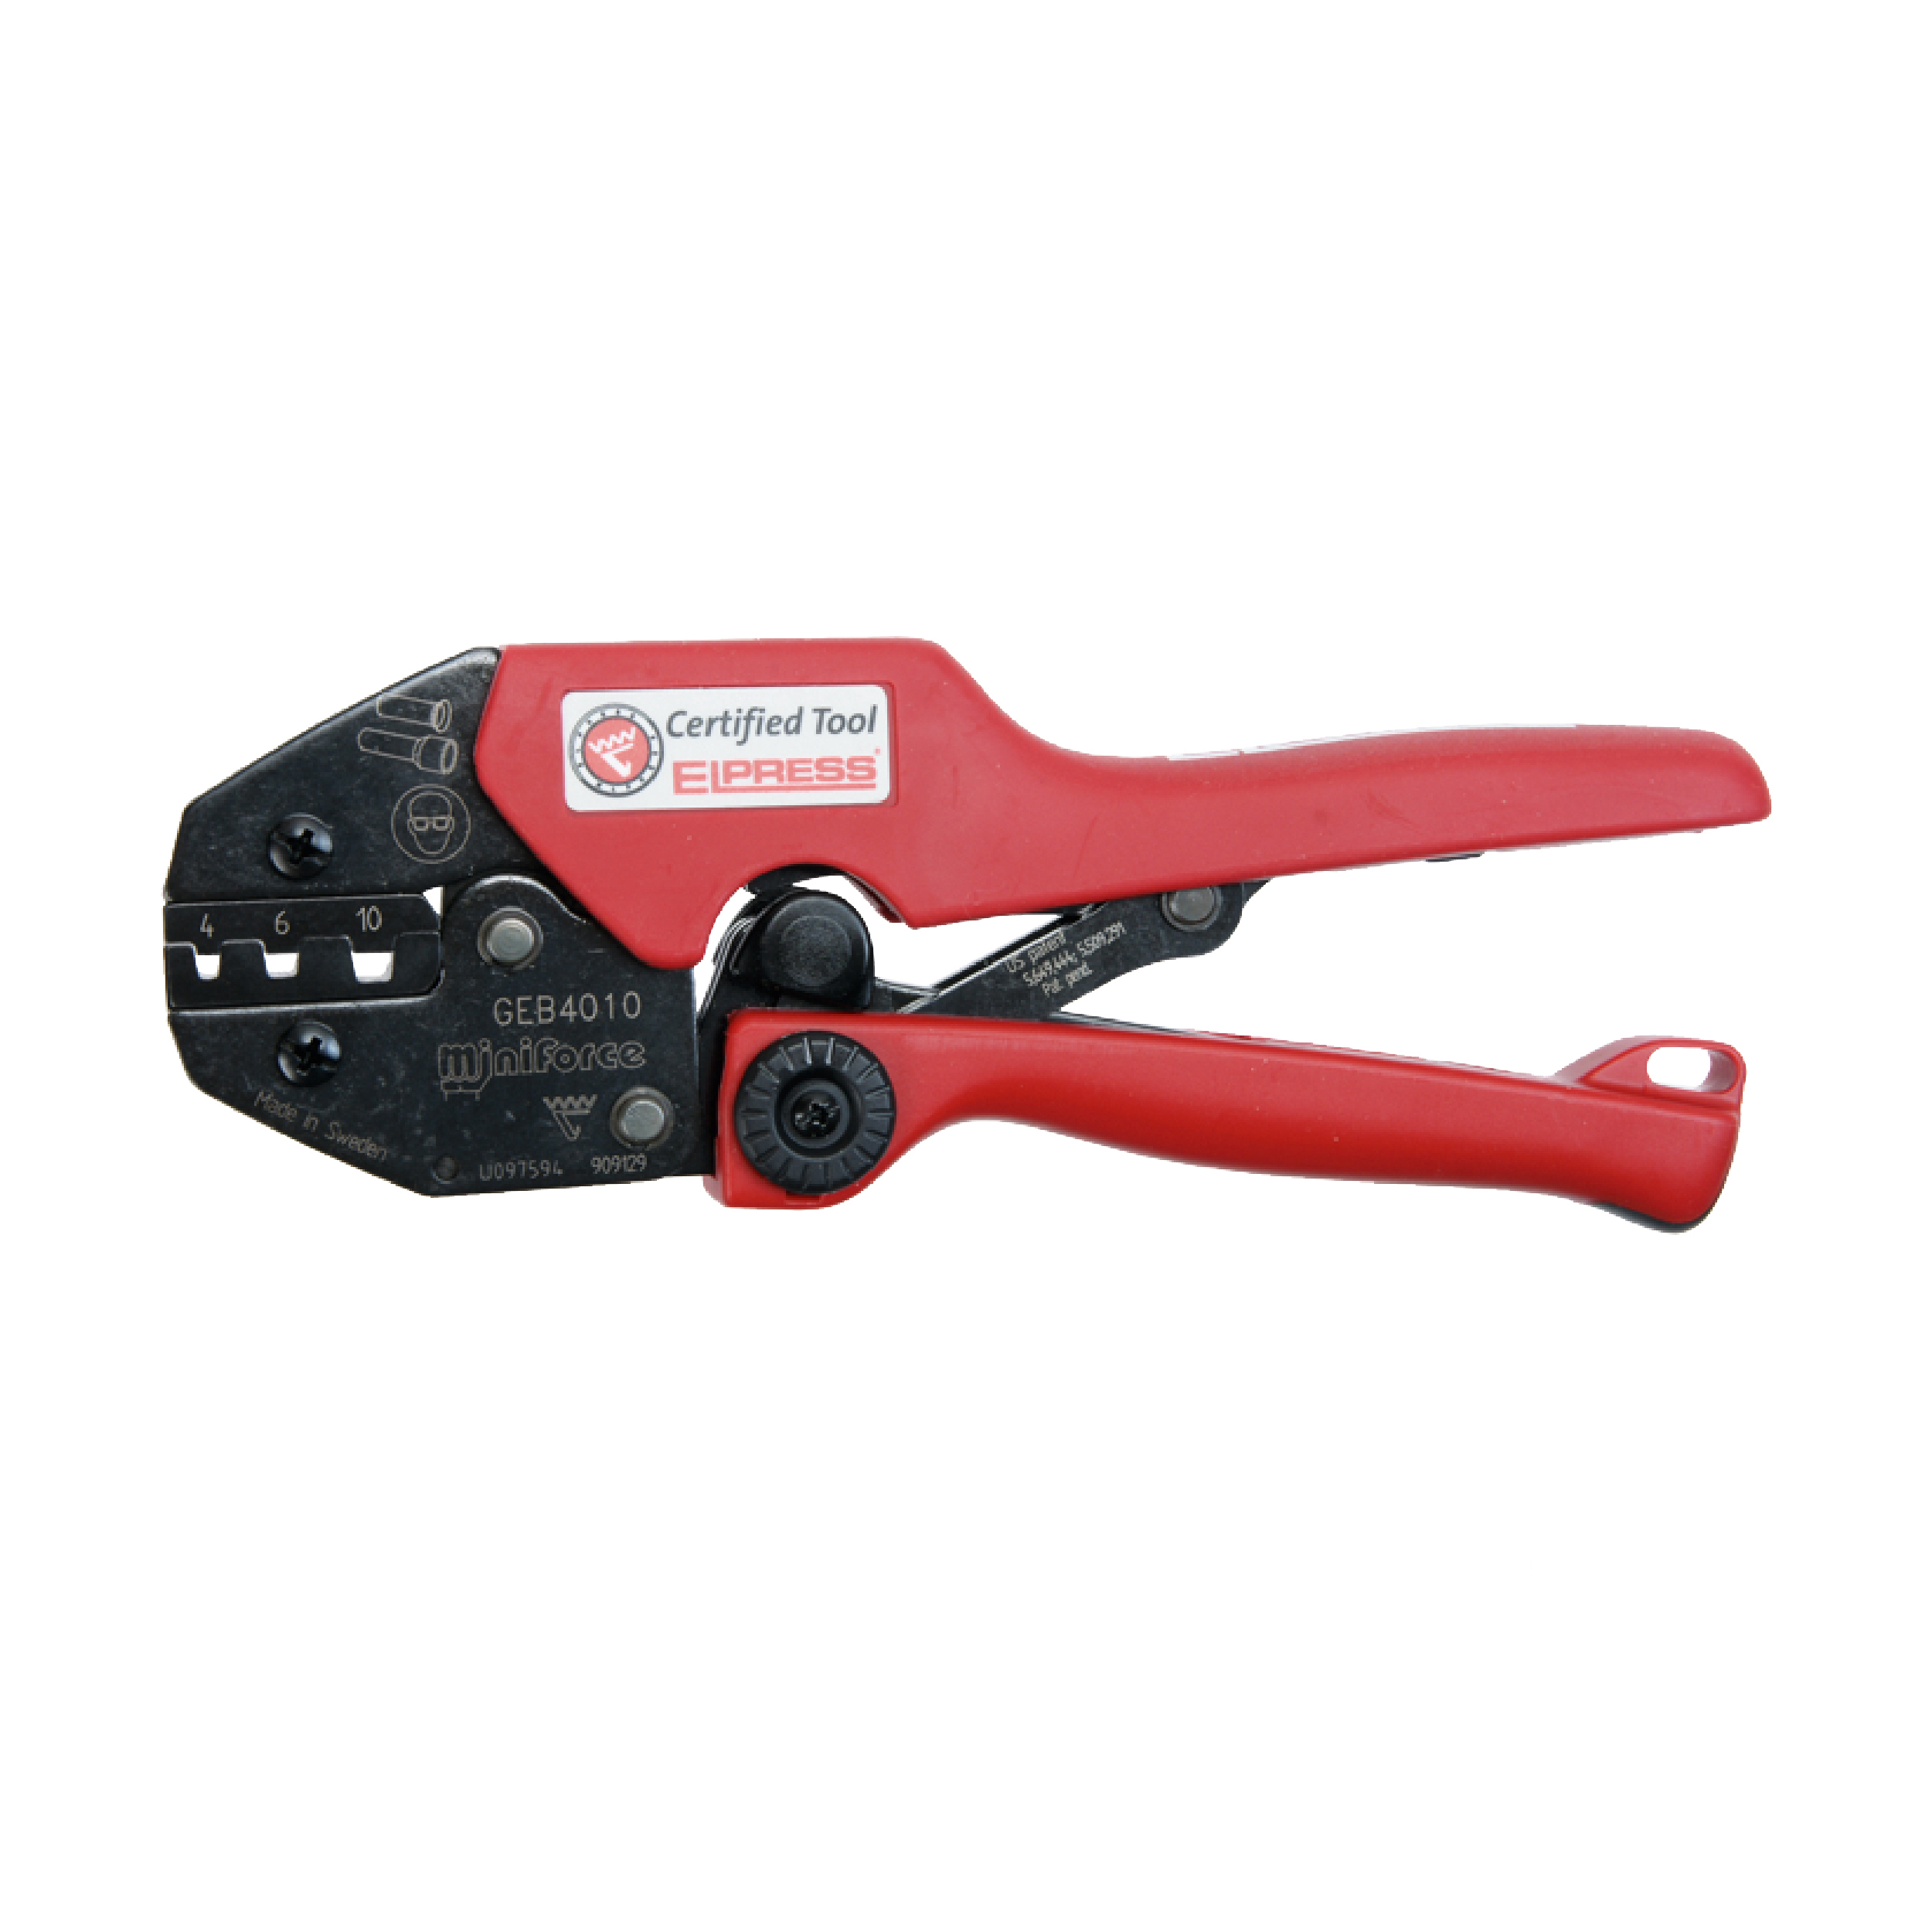 Elpress GEB4010 Miniforce Crimping Tool (Range 4-10mm²)